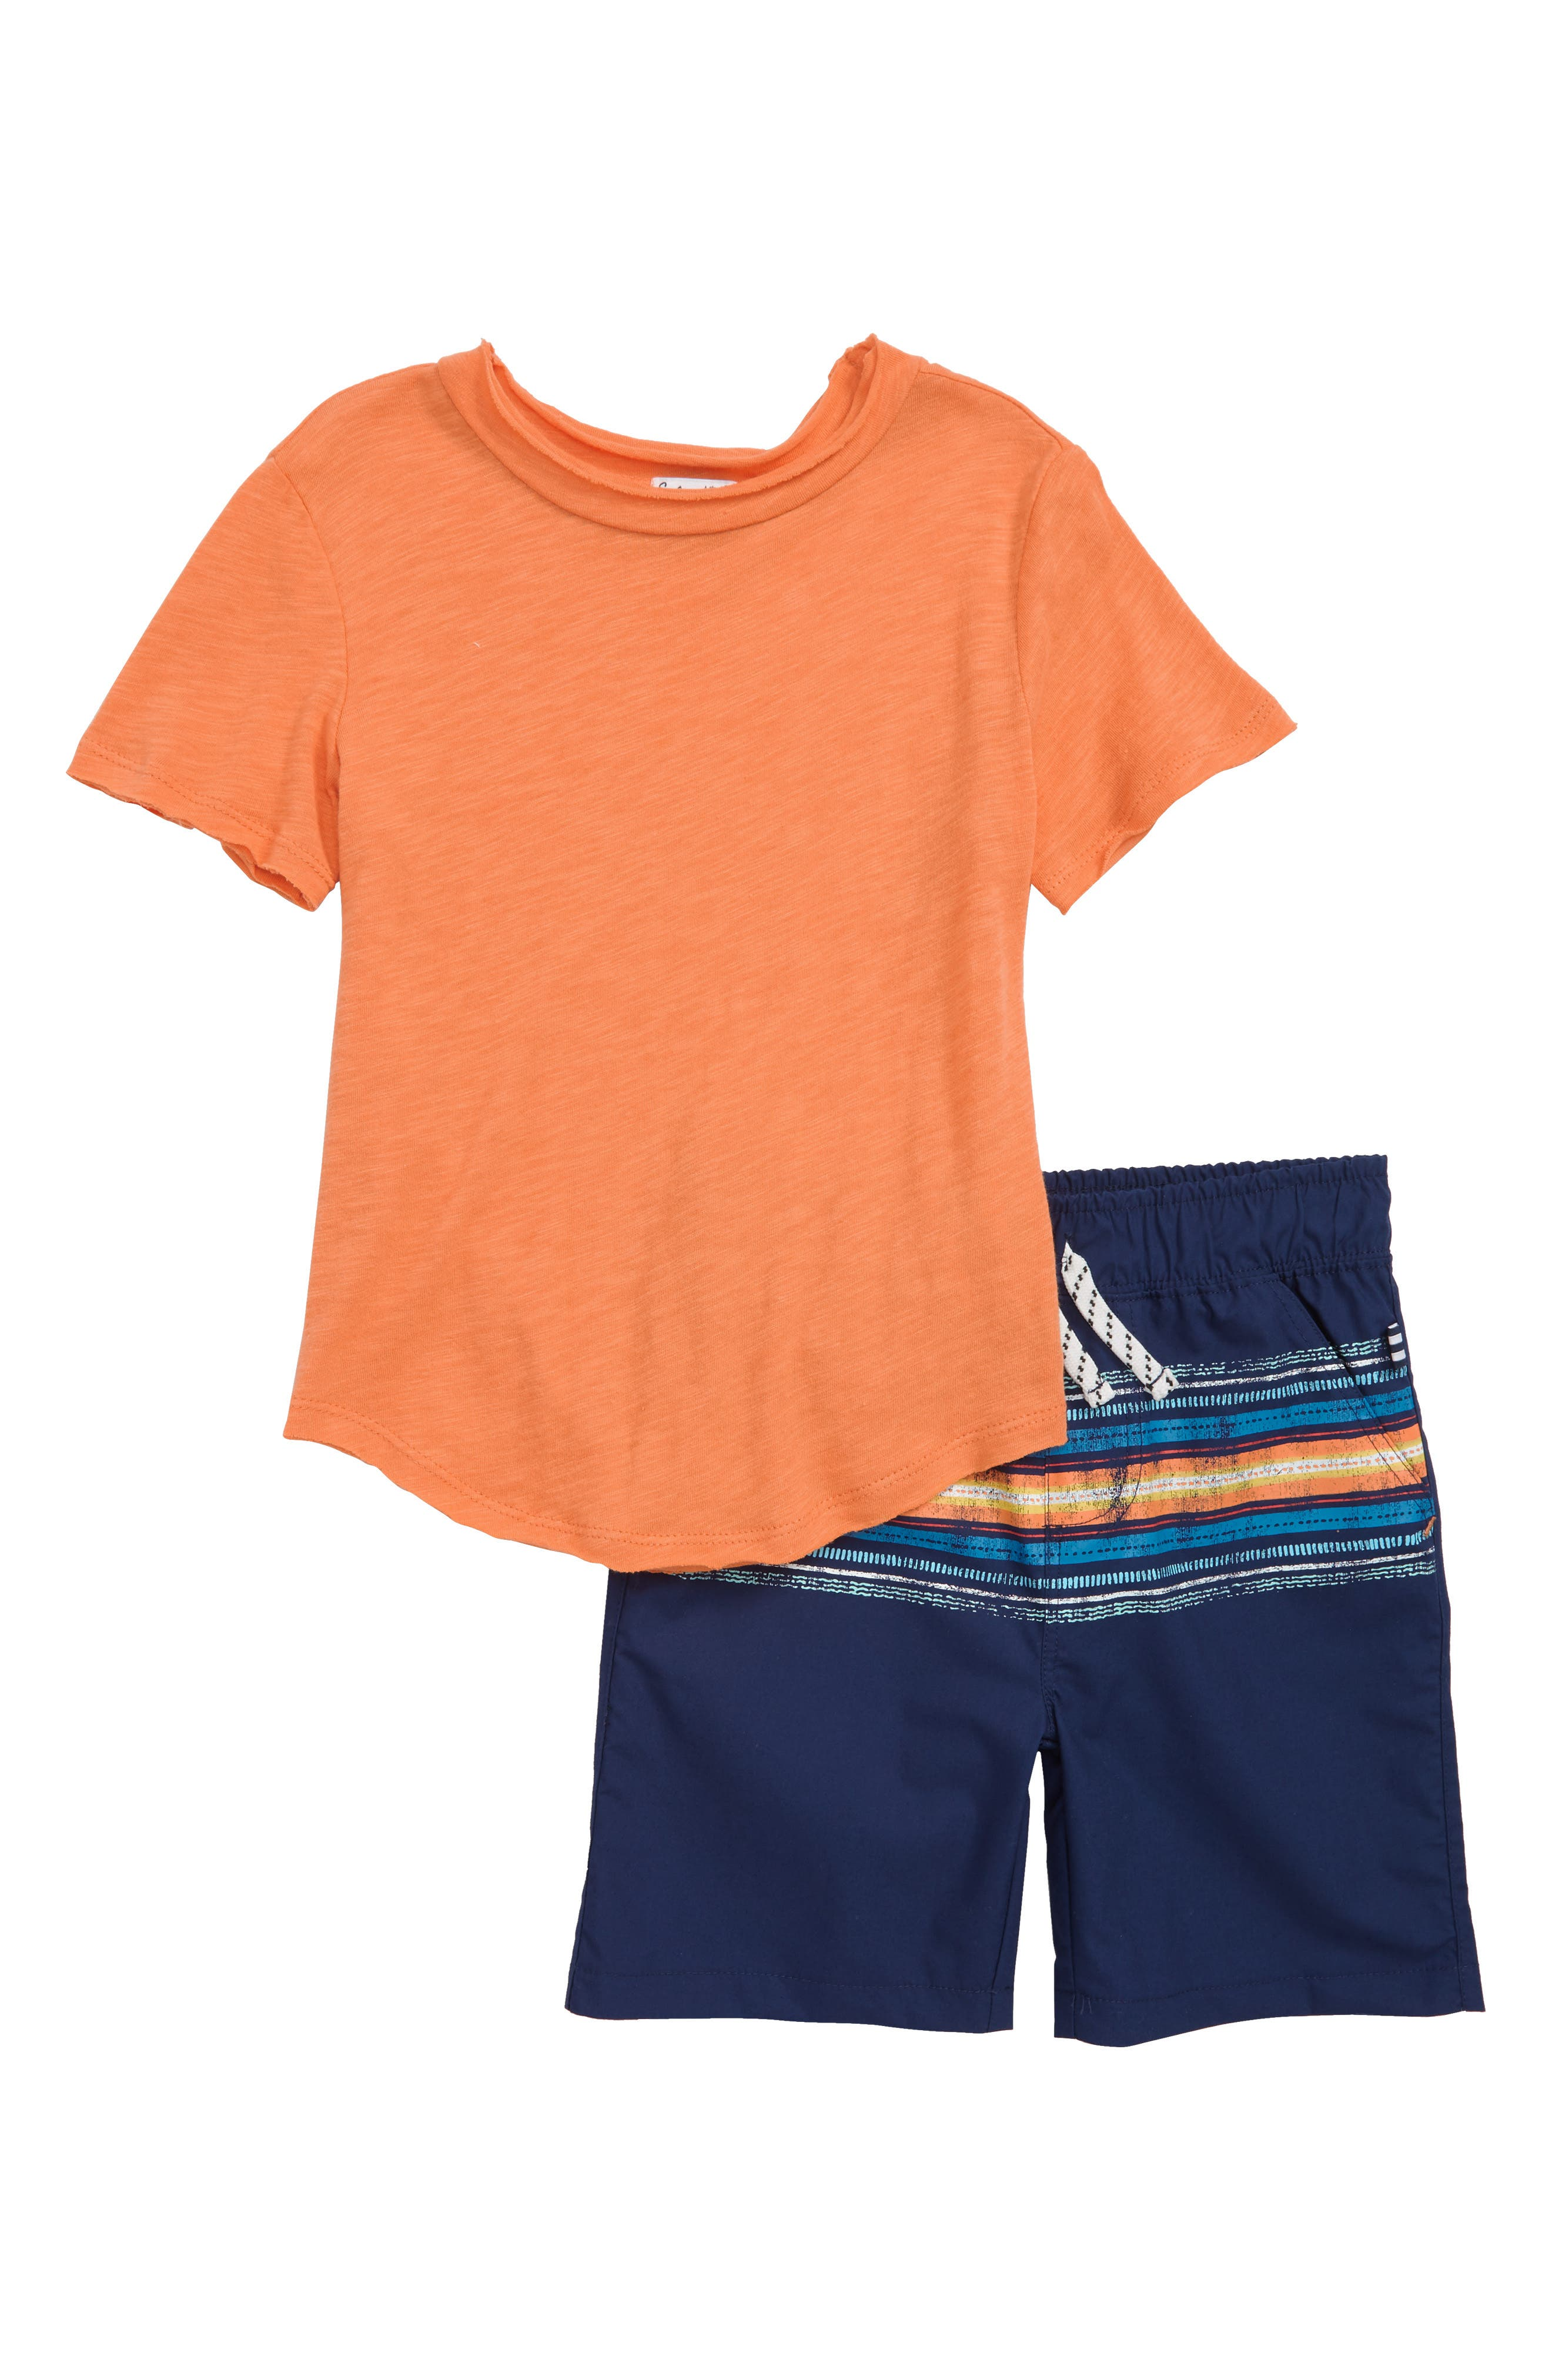 Splendid T-Shirt & Stripe Shorts Set (Little Boys)